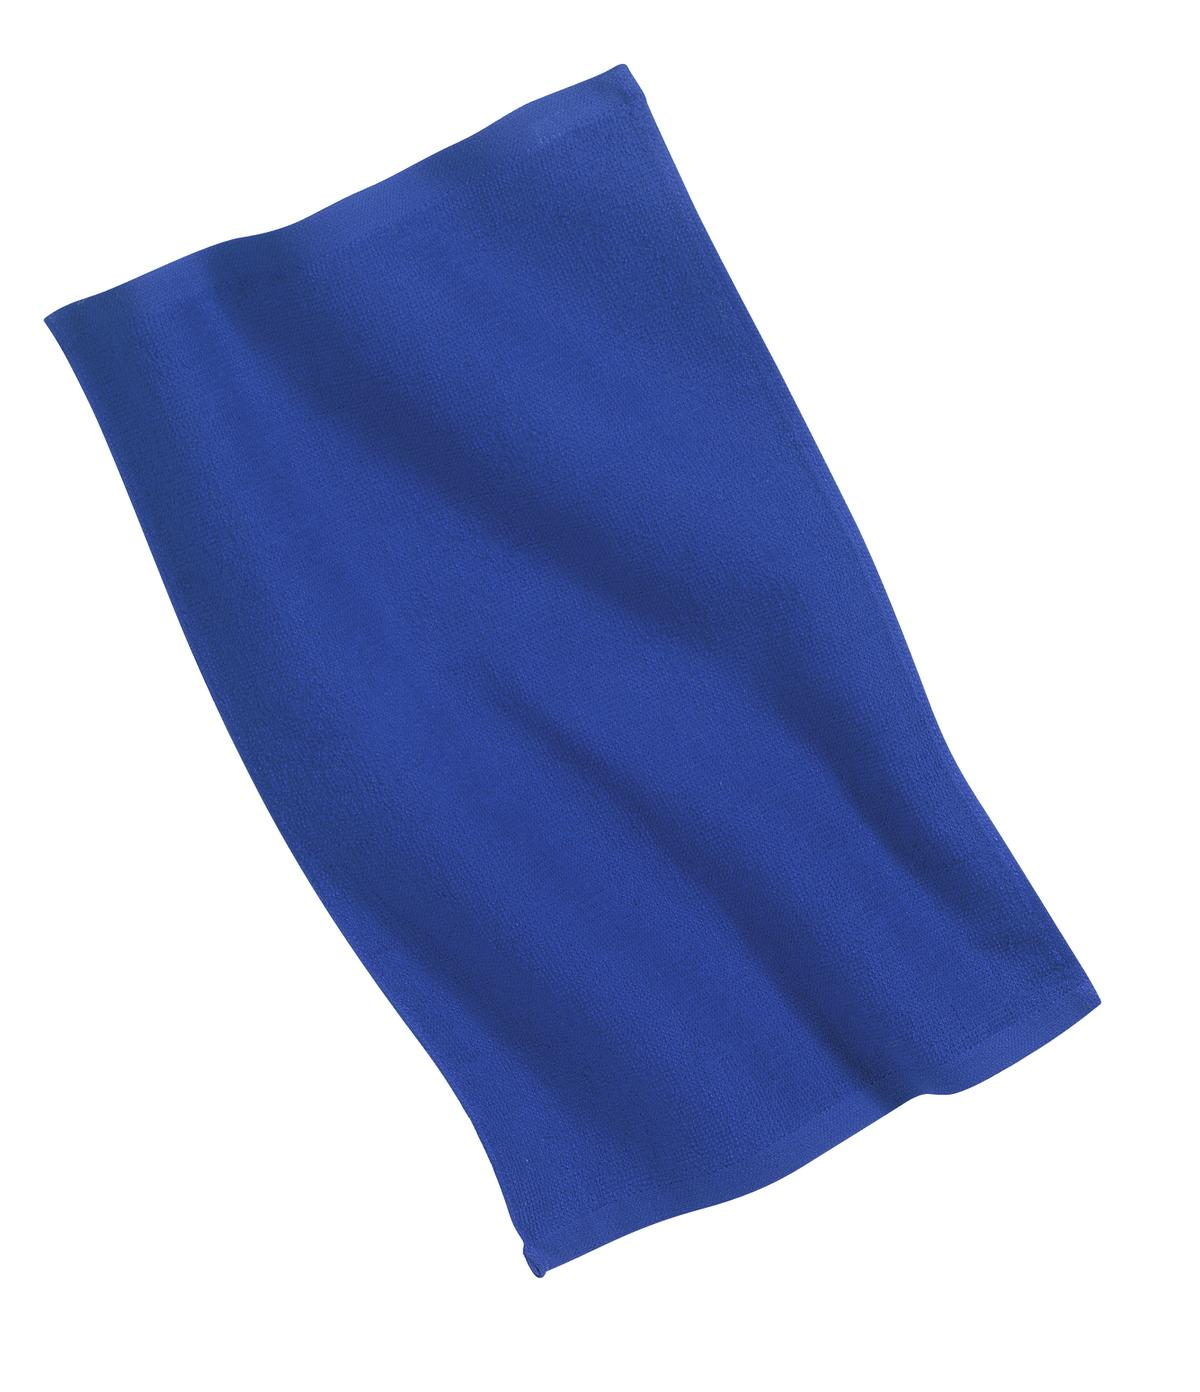 Port Authority ®  - Rally Towel.  PT38 - Royal